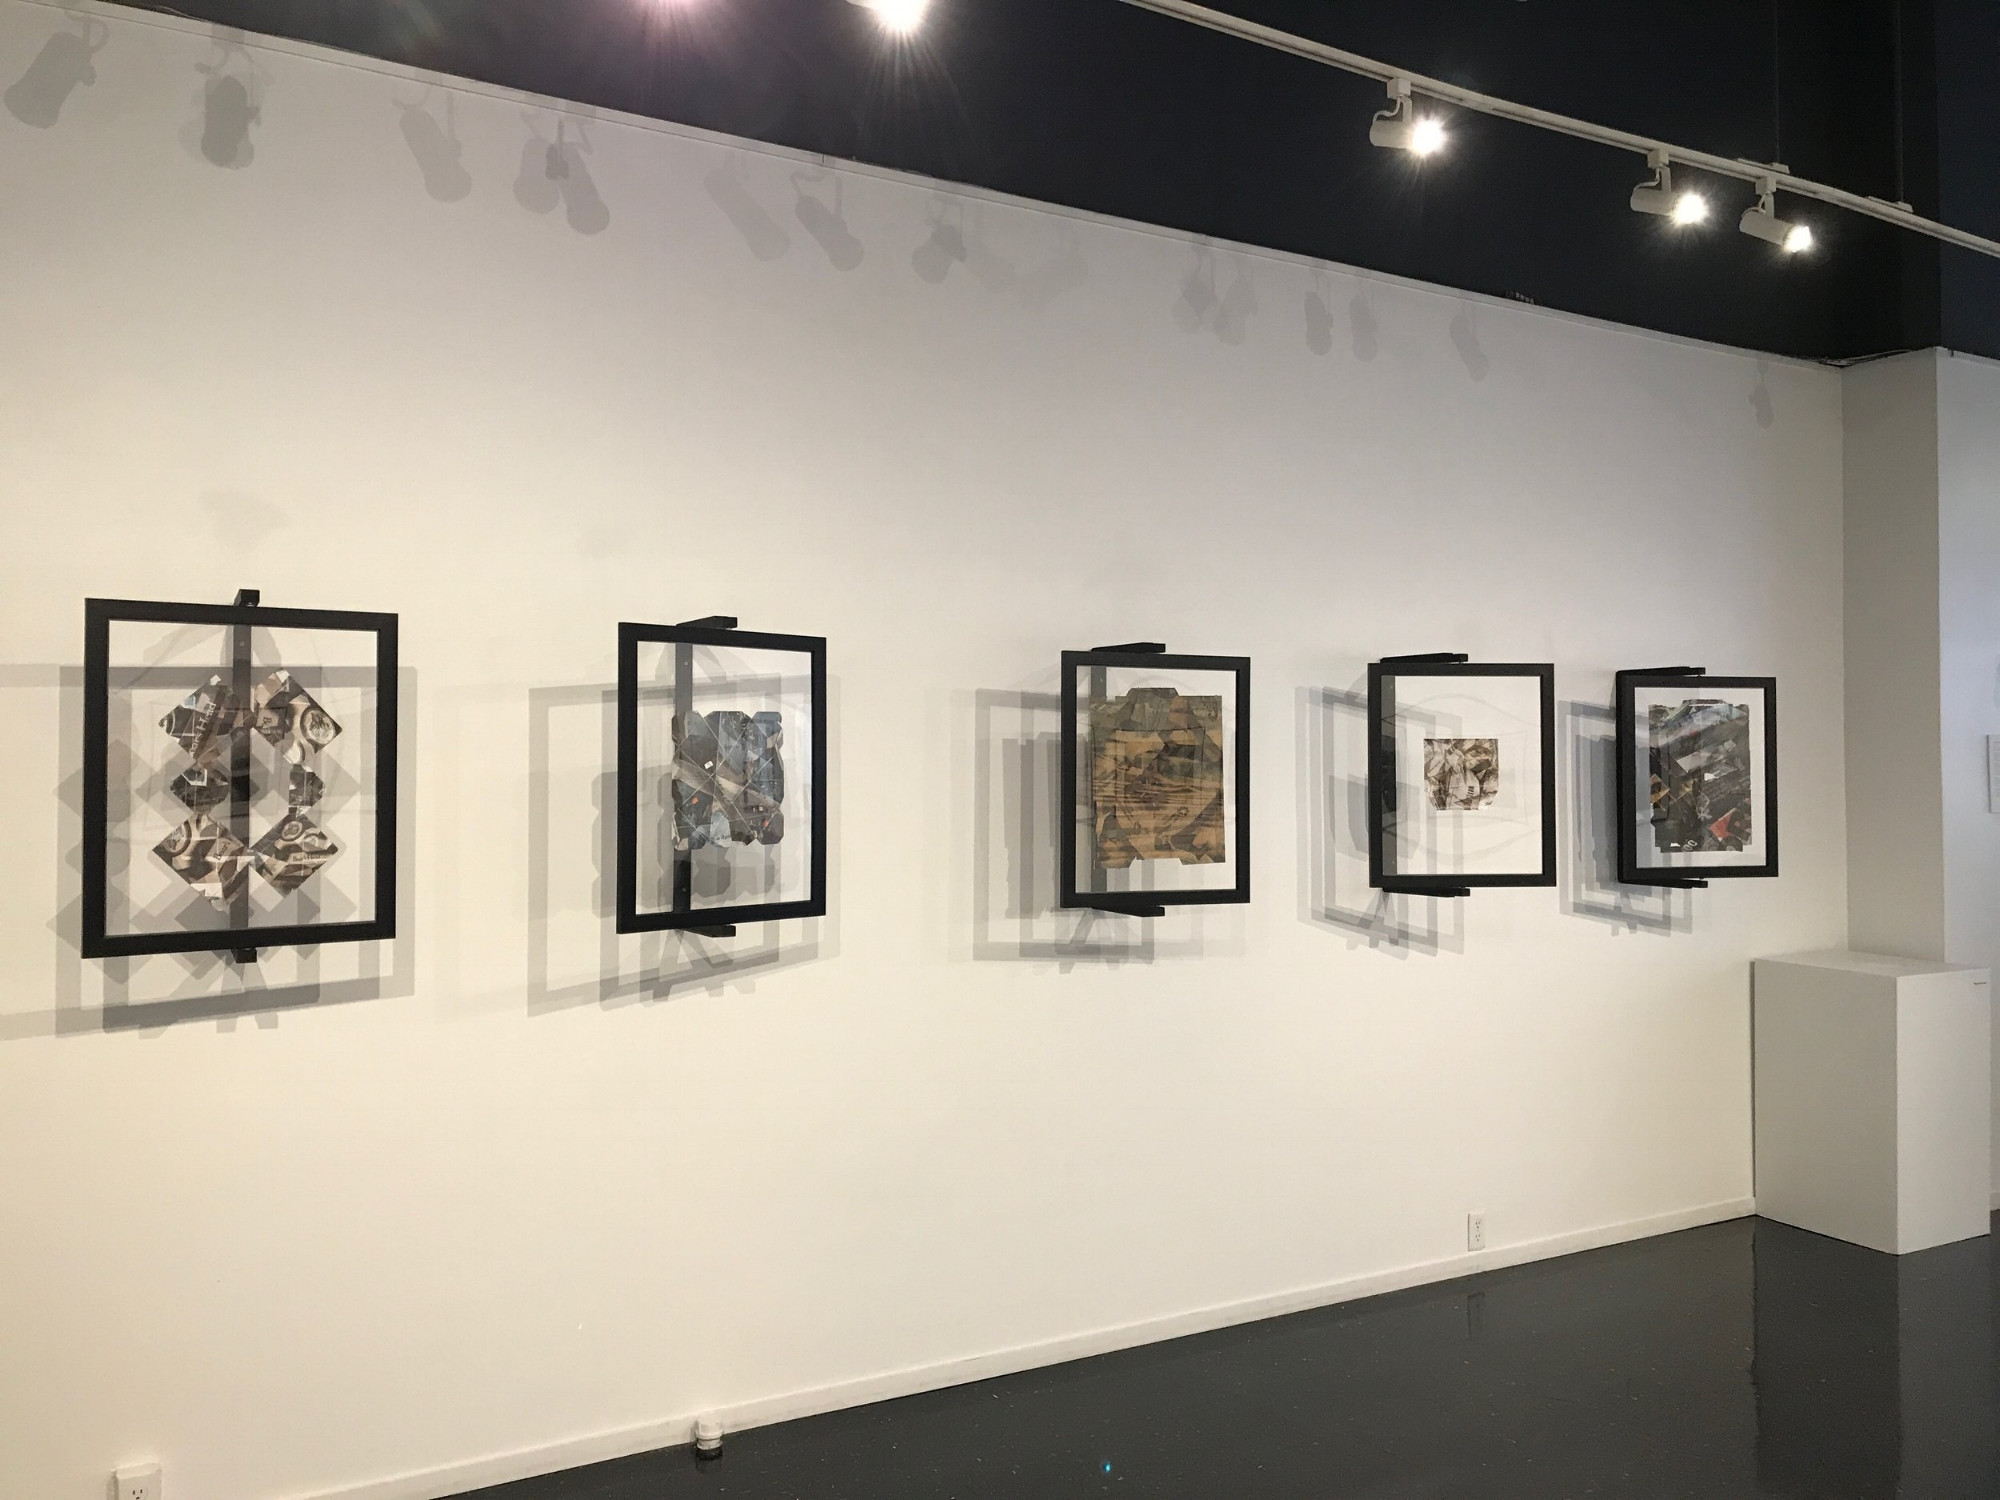 Images are hung, ready for the show.